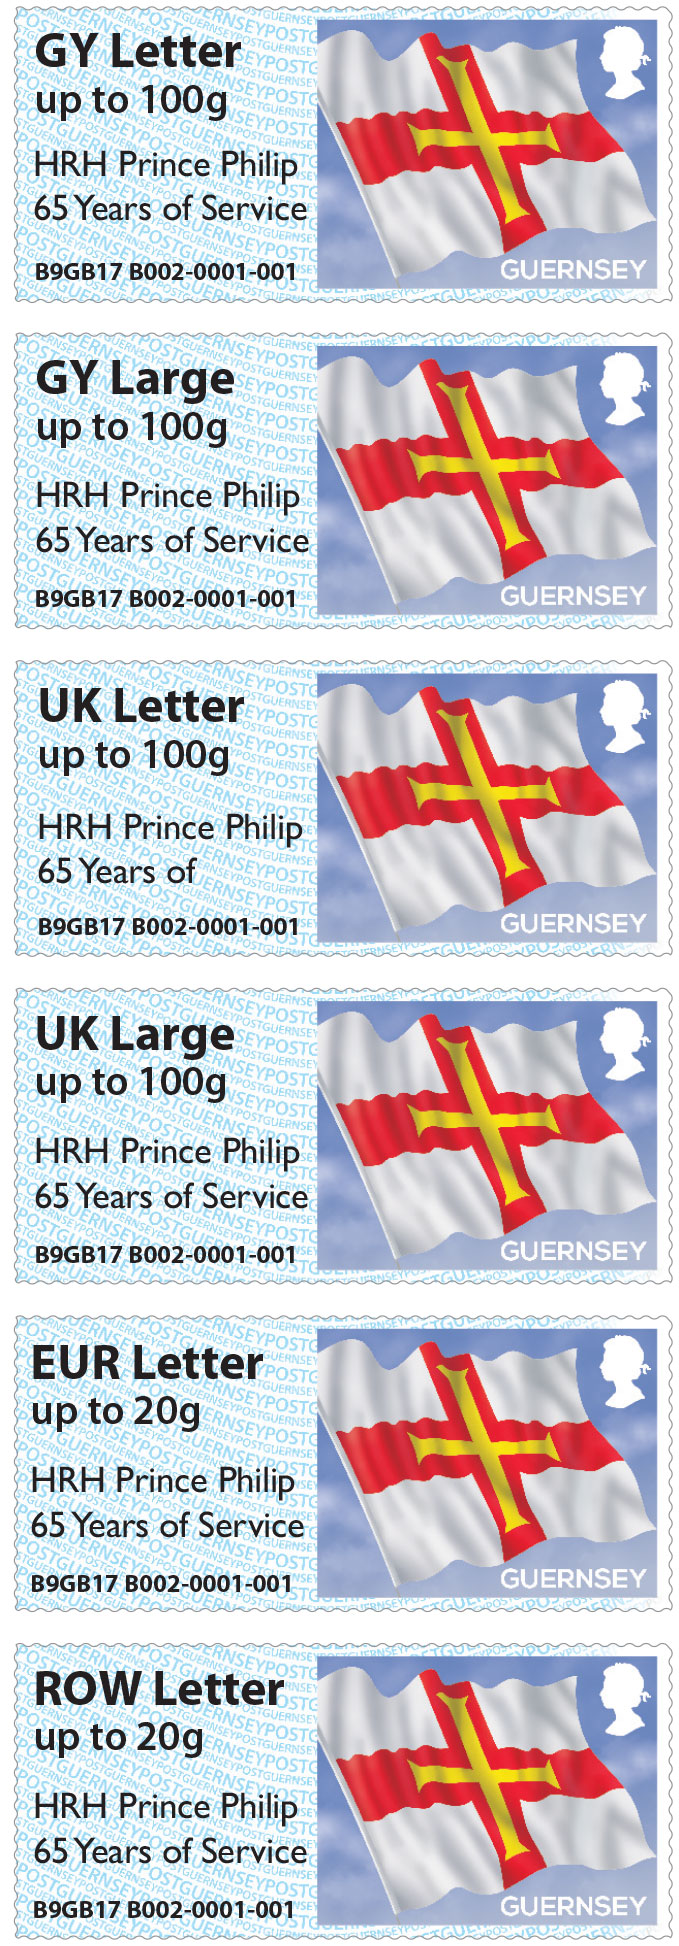 Royal Overprint for Guernsey's Post & Go at Autumn Stampex